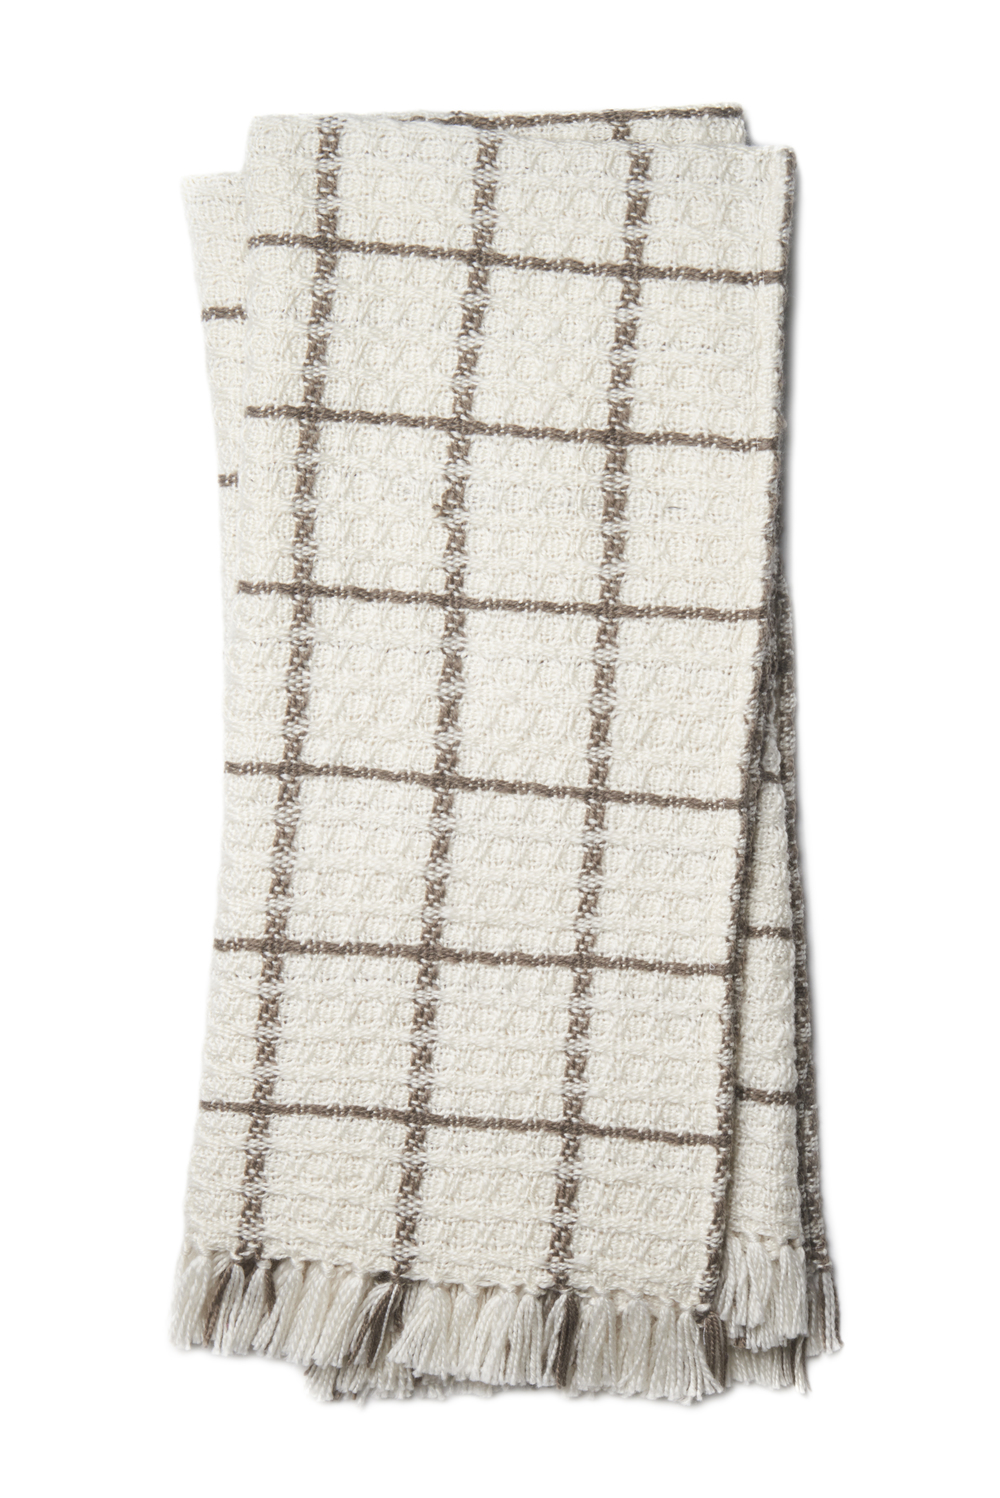 Loloi Rugs - Wren Rug (Ivory/Taupe)